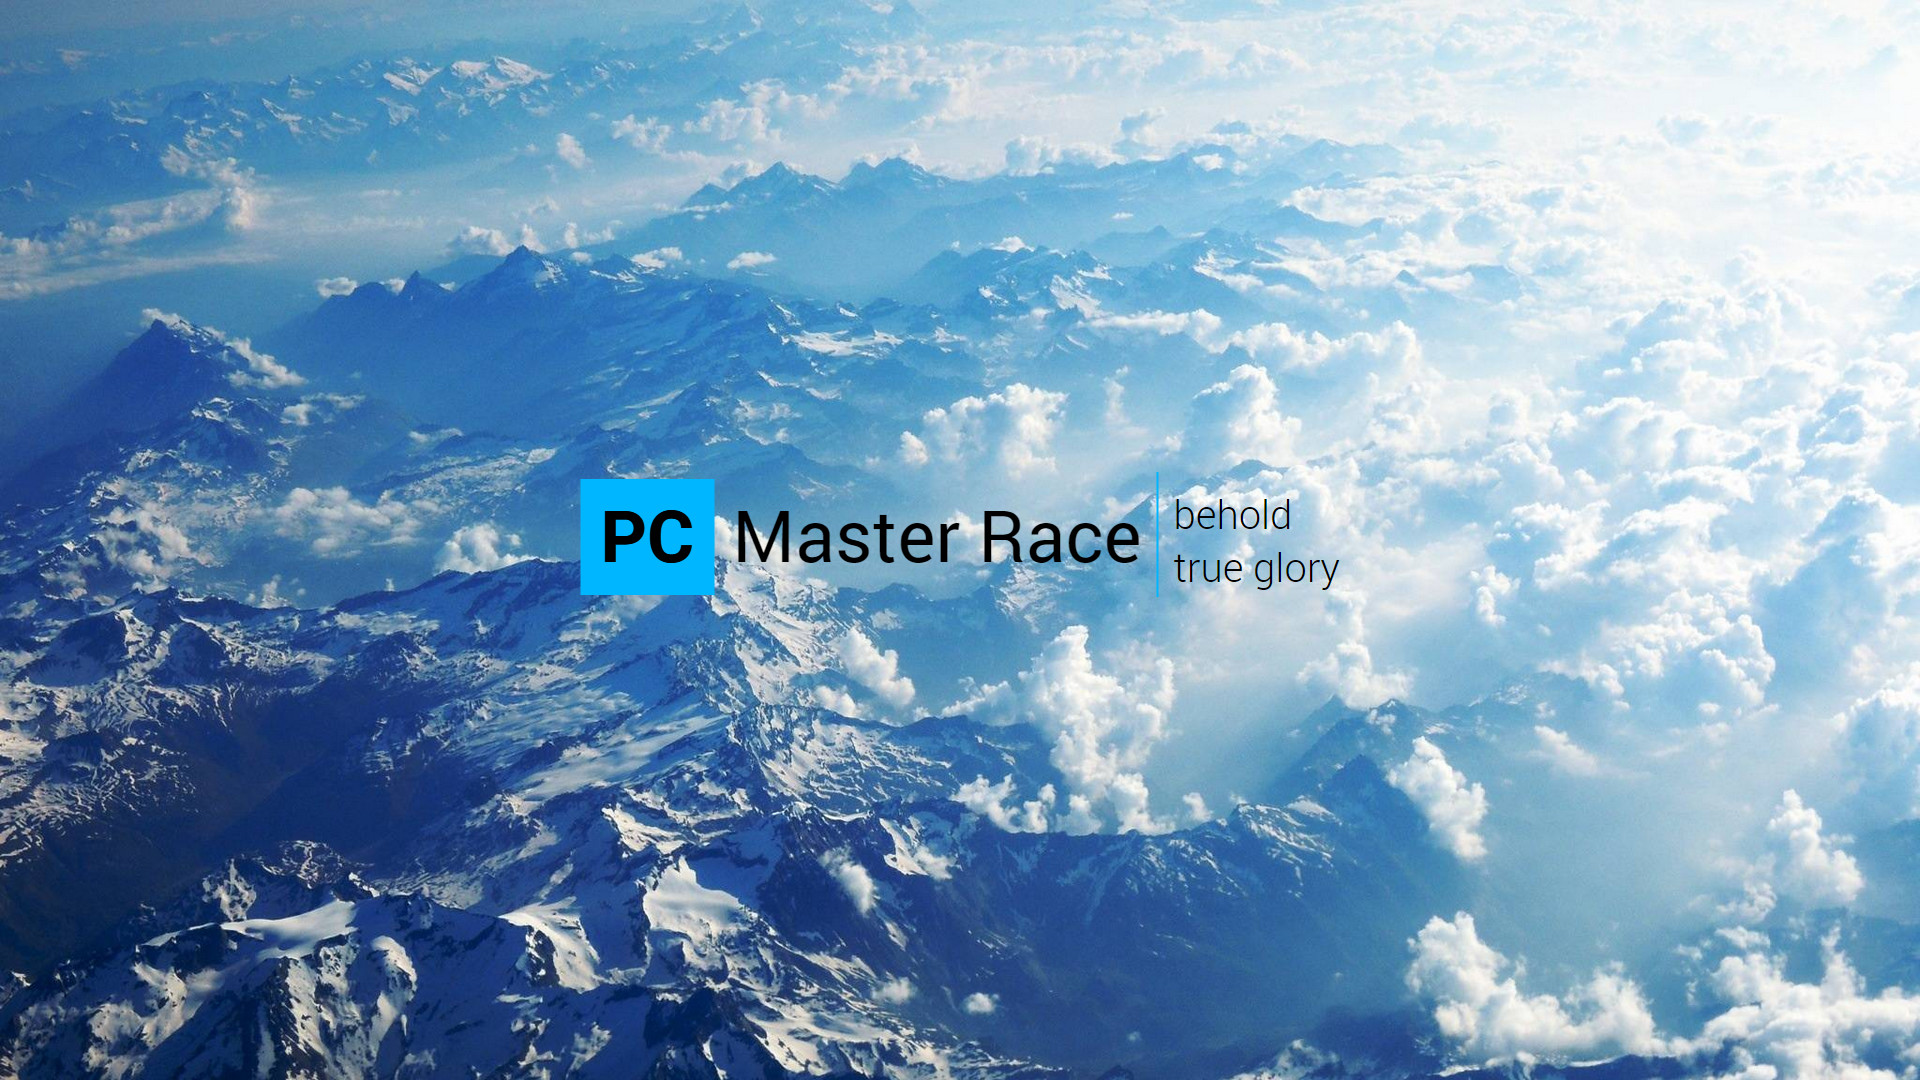 Pc Master Race Wallpaper 1920x1080 Posted By Ethan Anderson